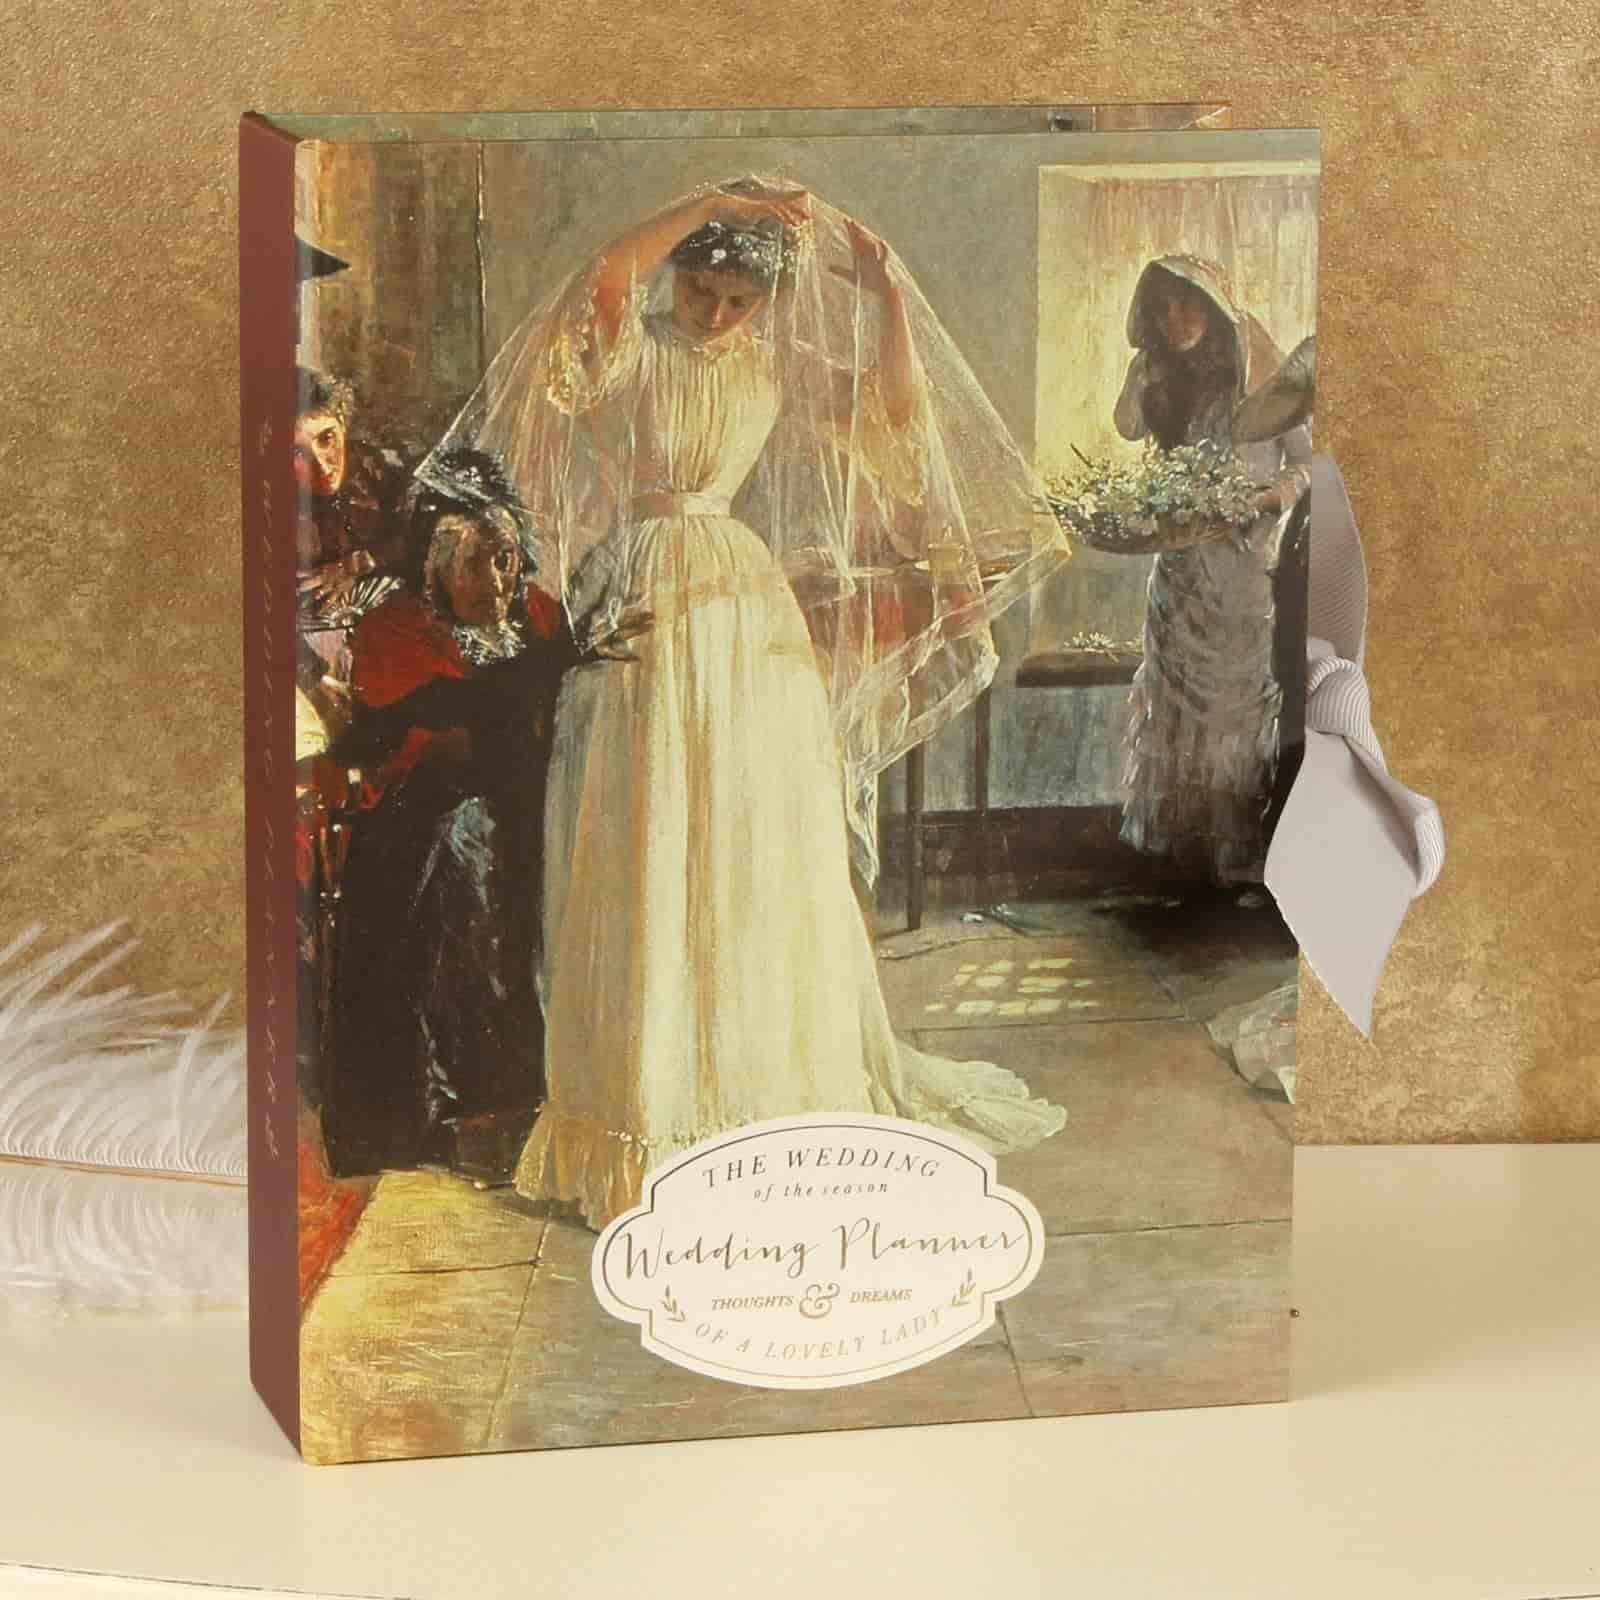 b1fb427d4d0 Vintage Style Wedding Planner - Treasured gifts for you